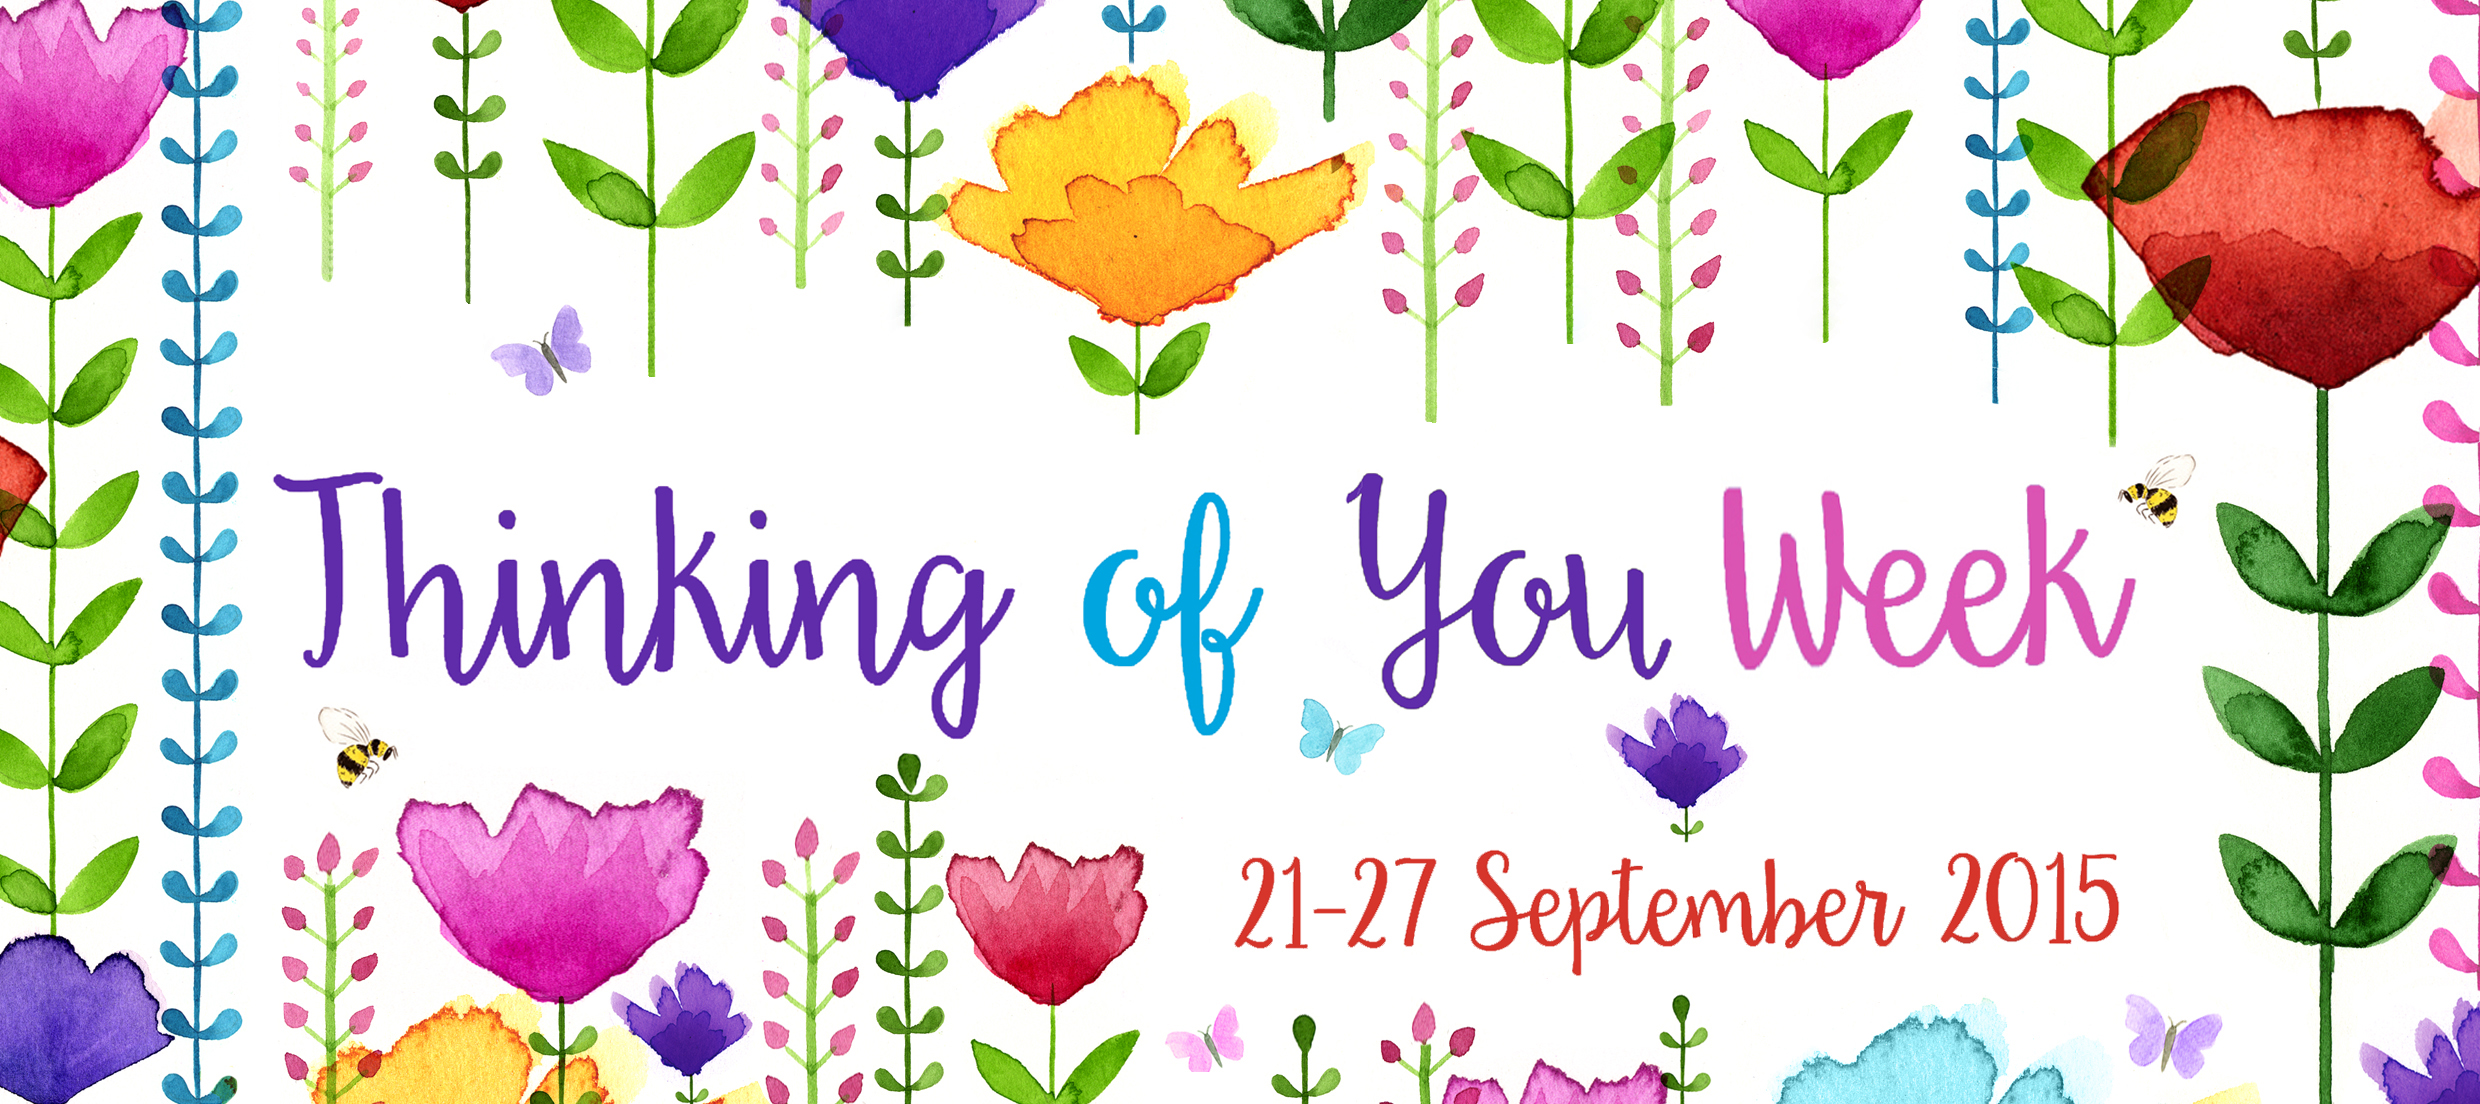 National Thinking of You Week 2015